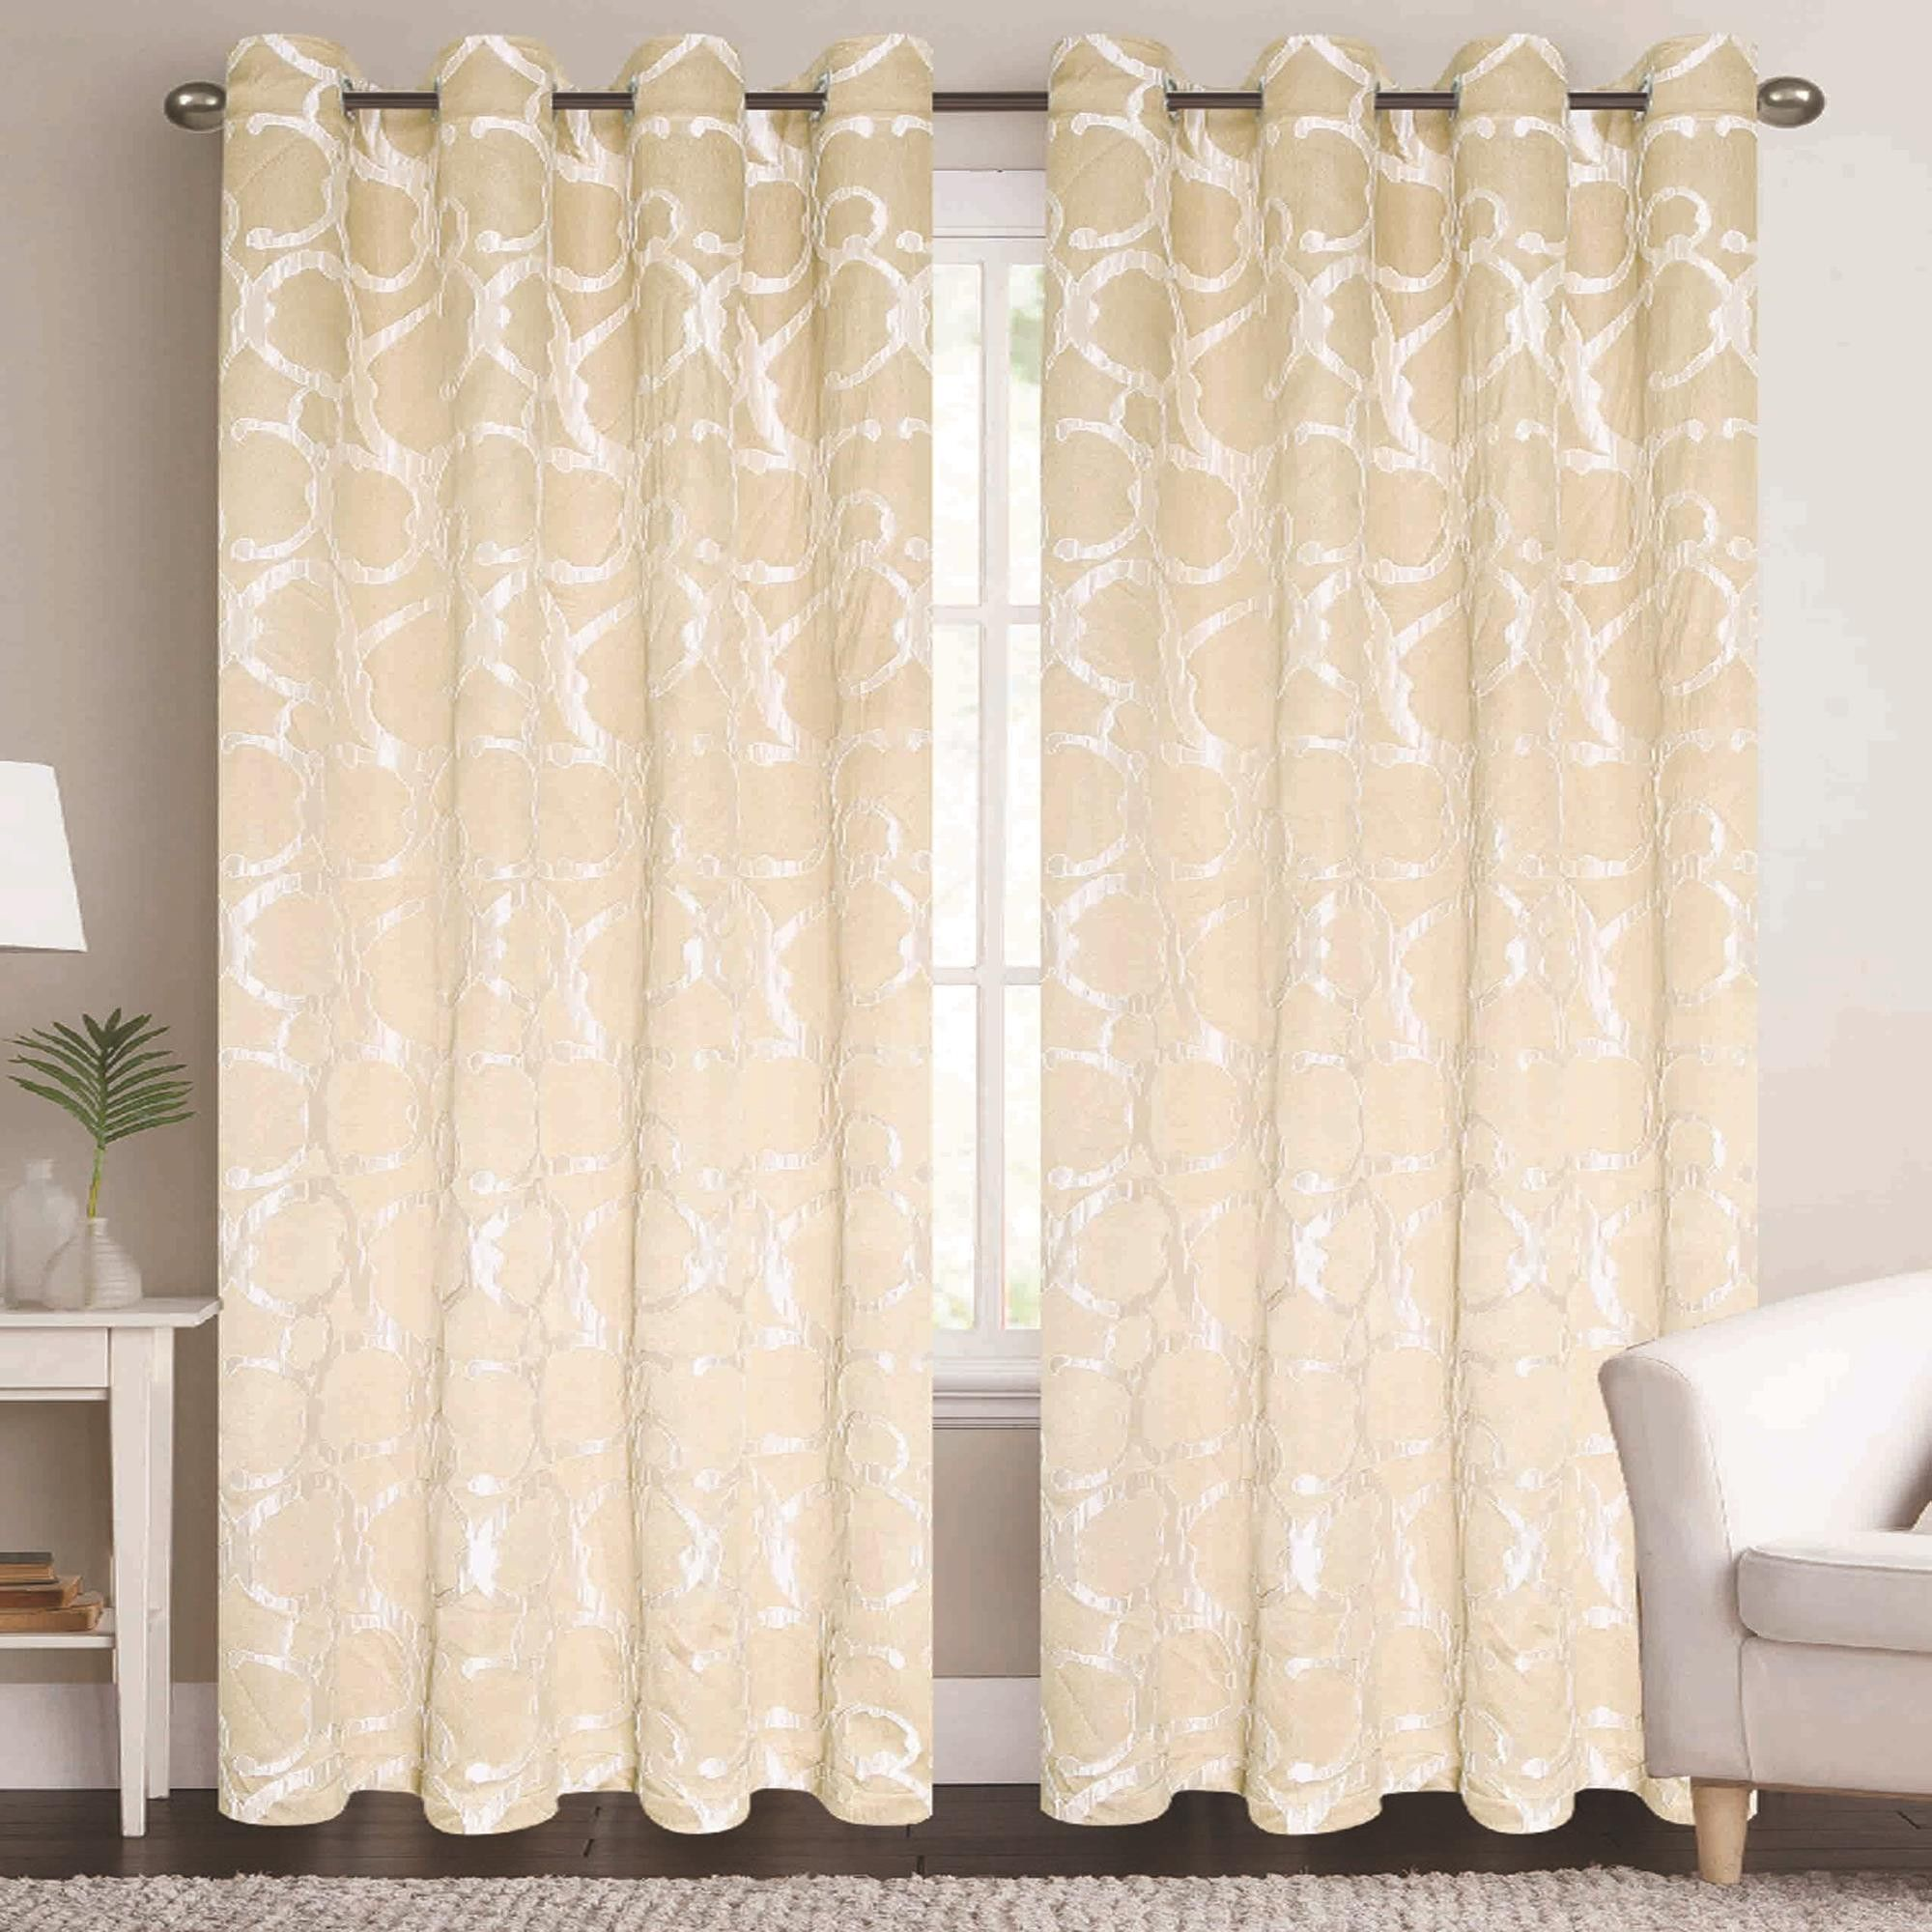 Rt Designers Beckett Embossed Grommet Top Panel 54 X 84 Cream Kardinad Curtains Furniture Covers House Styles